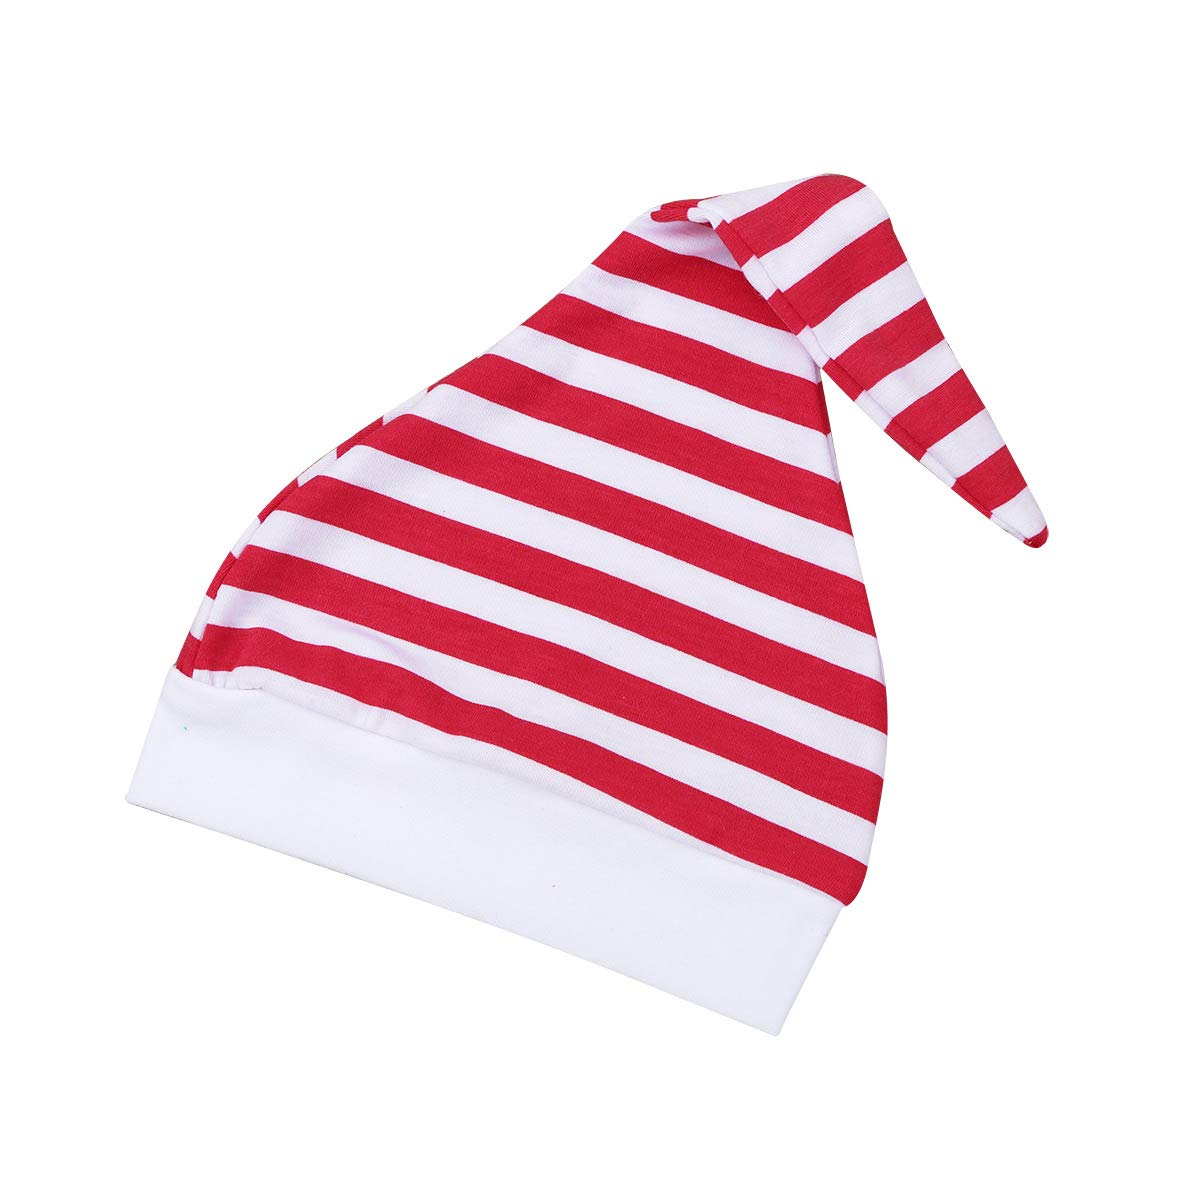 iEFiEL Infant Baby Boys Girls Christmas Outfits Santa Claus Costumes Long Sleeves Romper with Striped Leggings Hat Set Green 0-3 Months